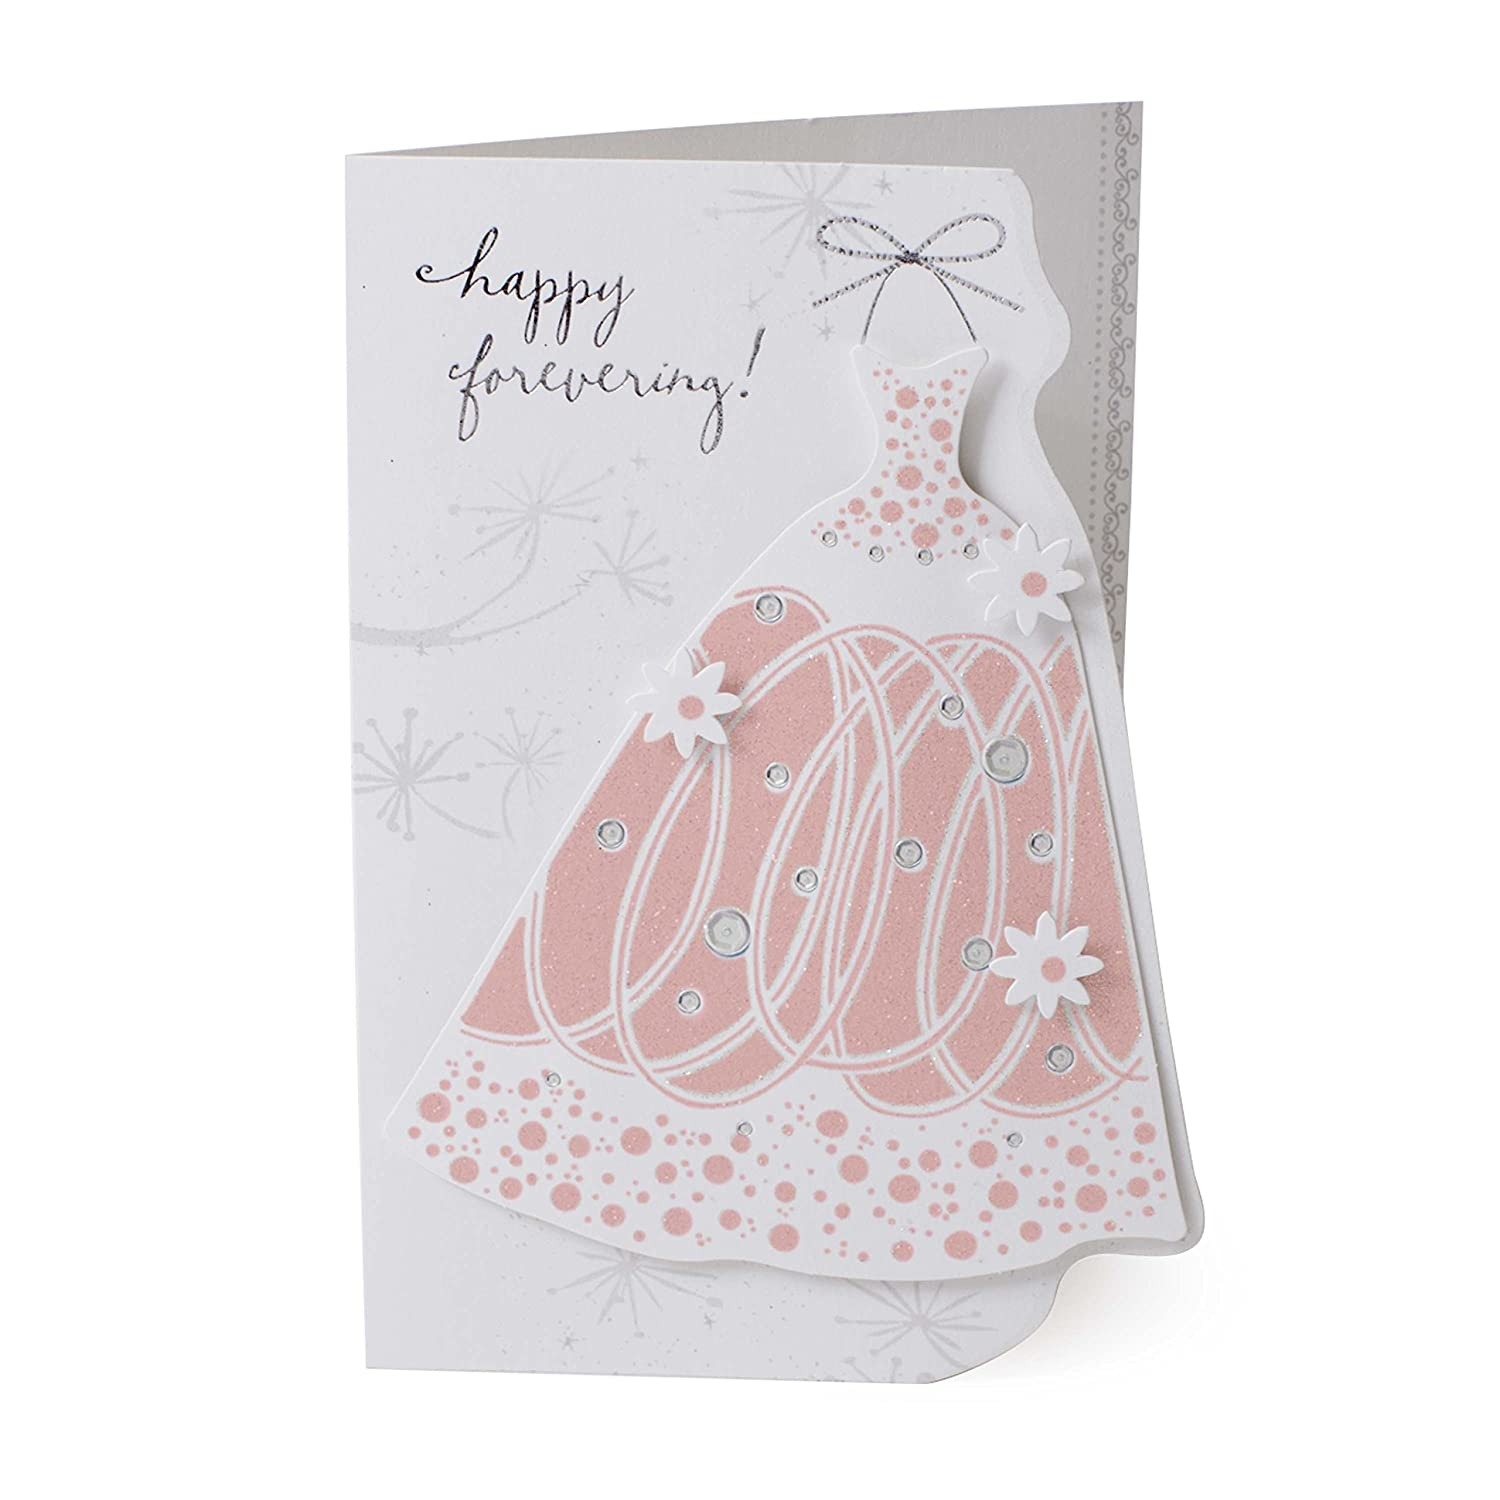 c9f1e57111e0 Amazon.com   Hallmark Wedding Shower Card (Dress)   Office Products